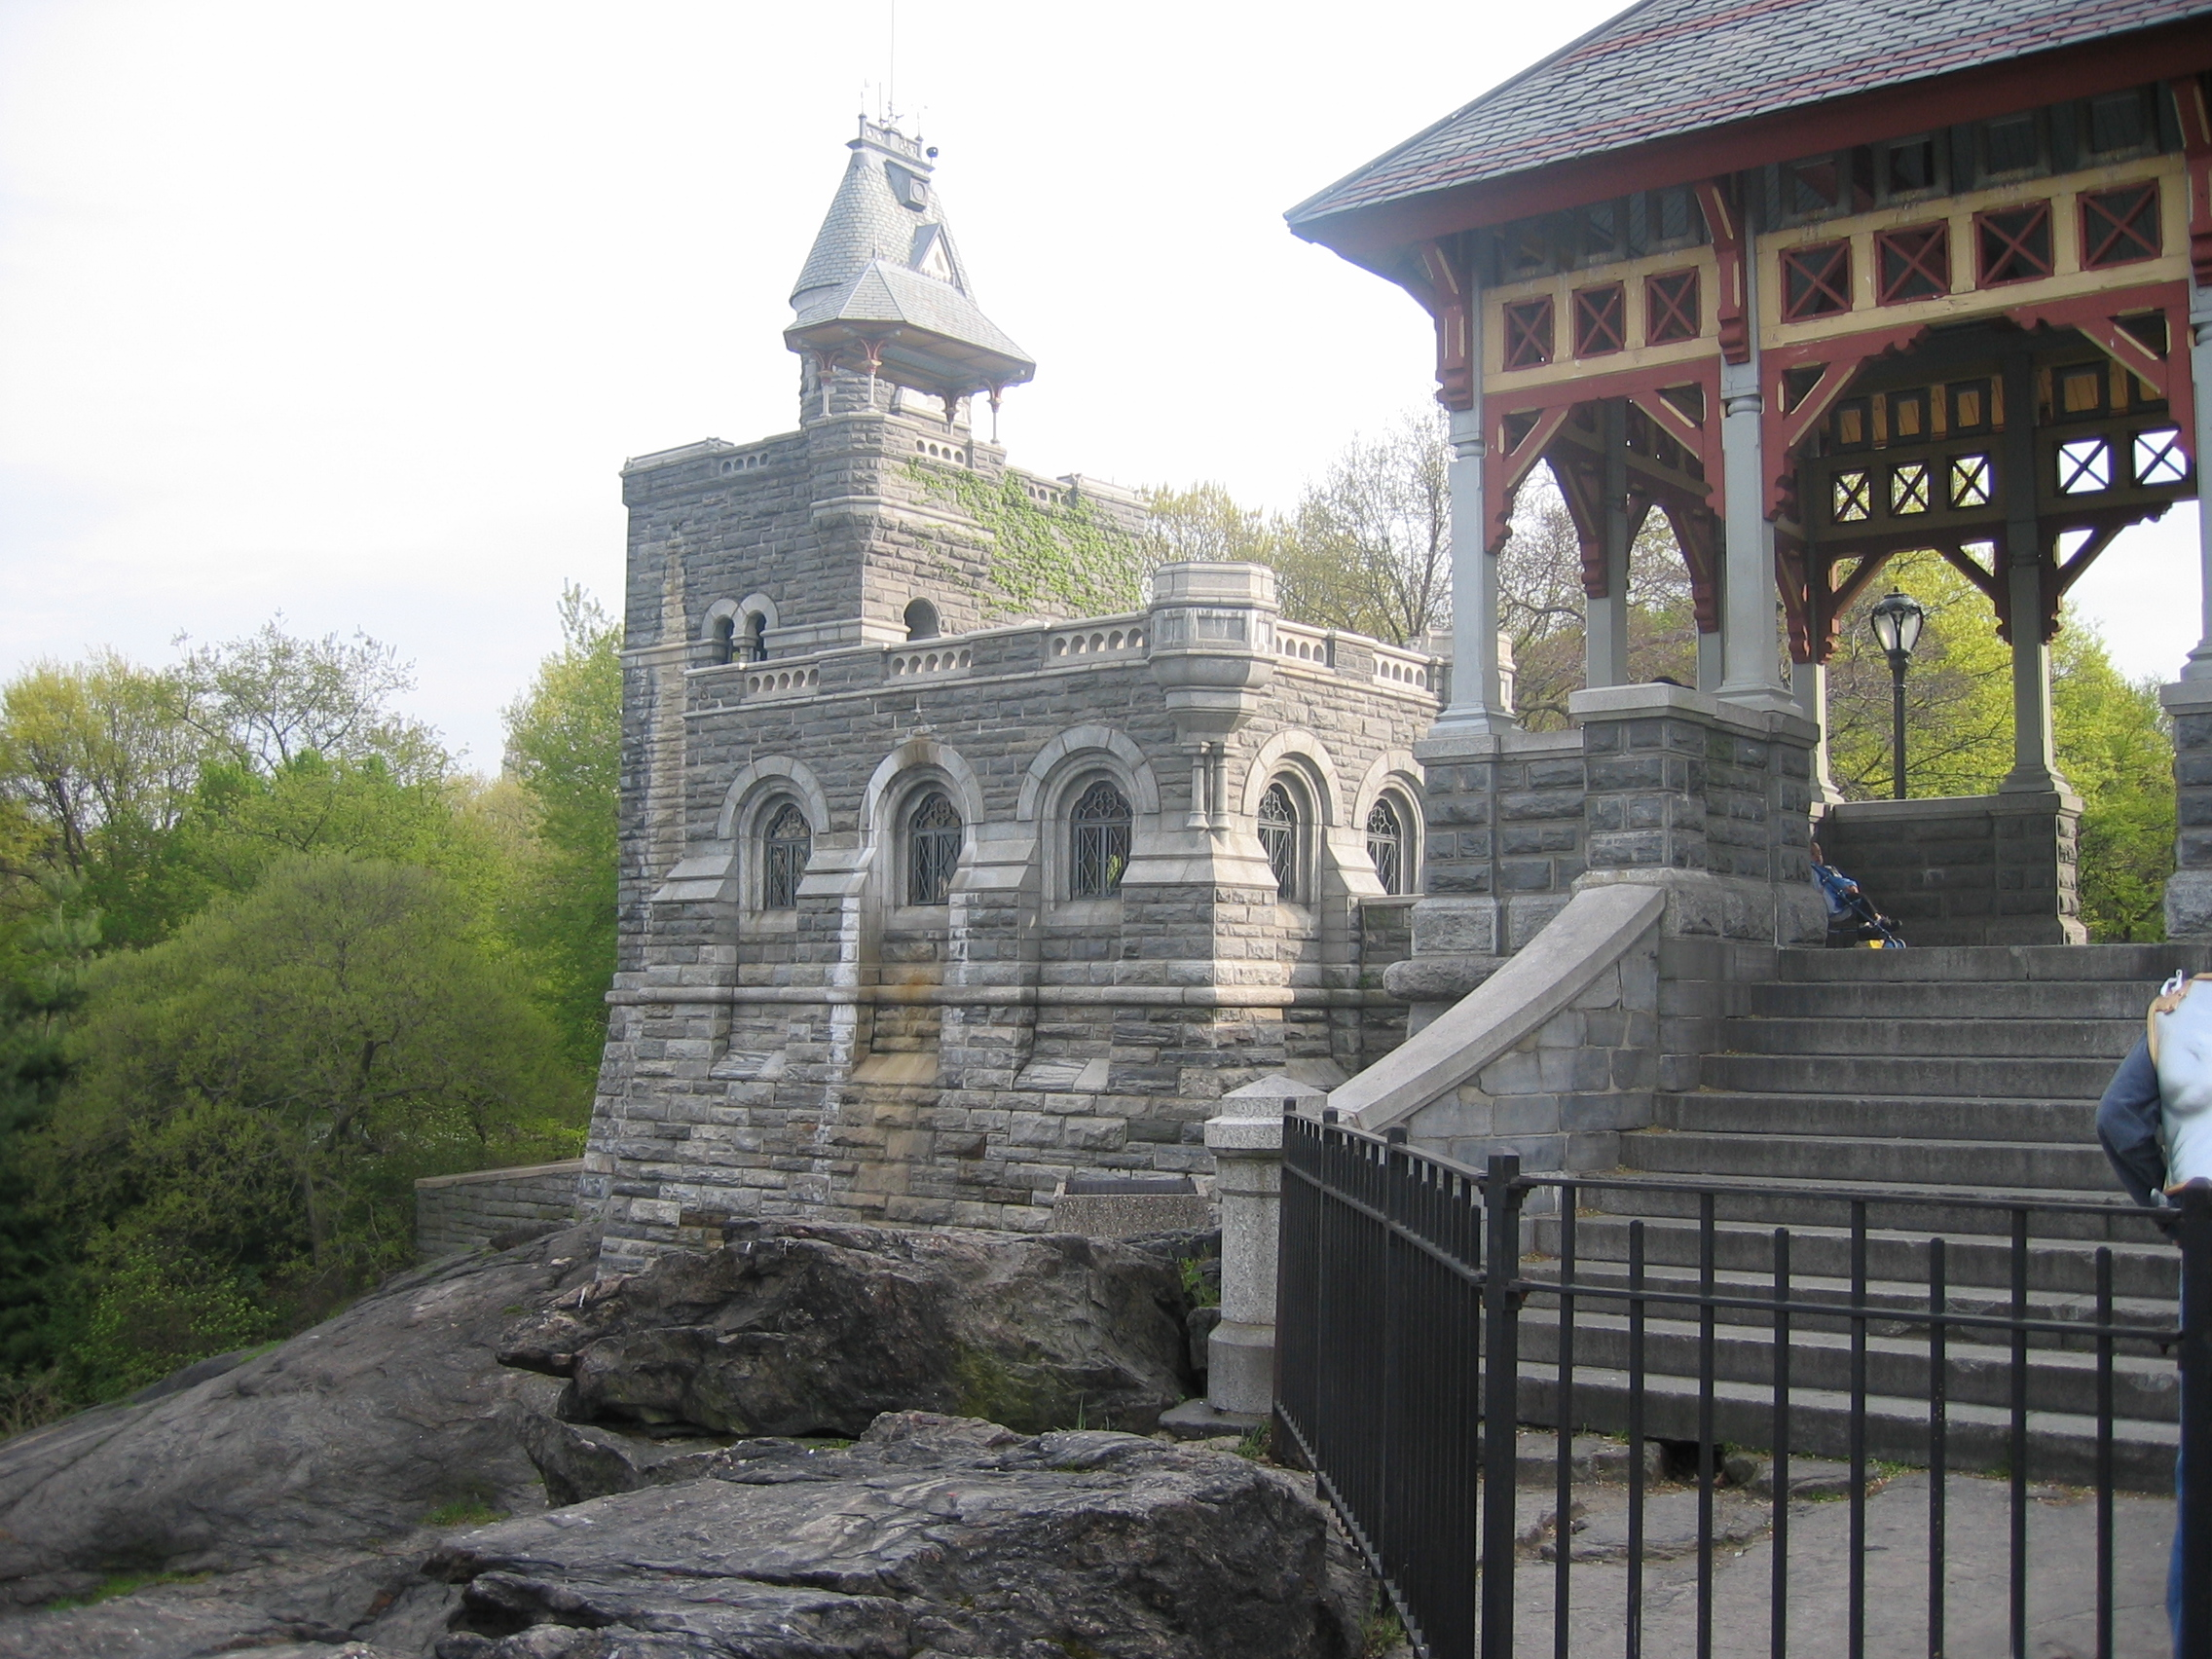 Top 10 greatest places in central park central park for Best places to go in central park